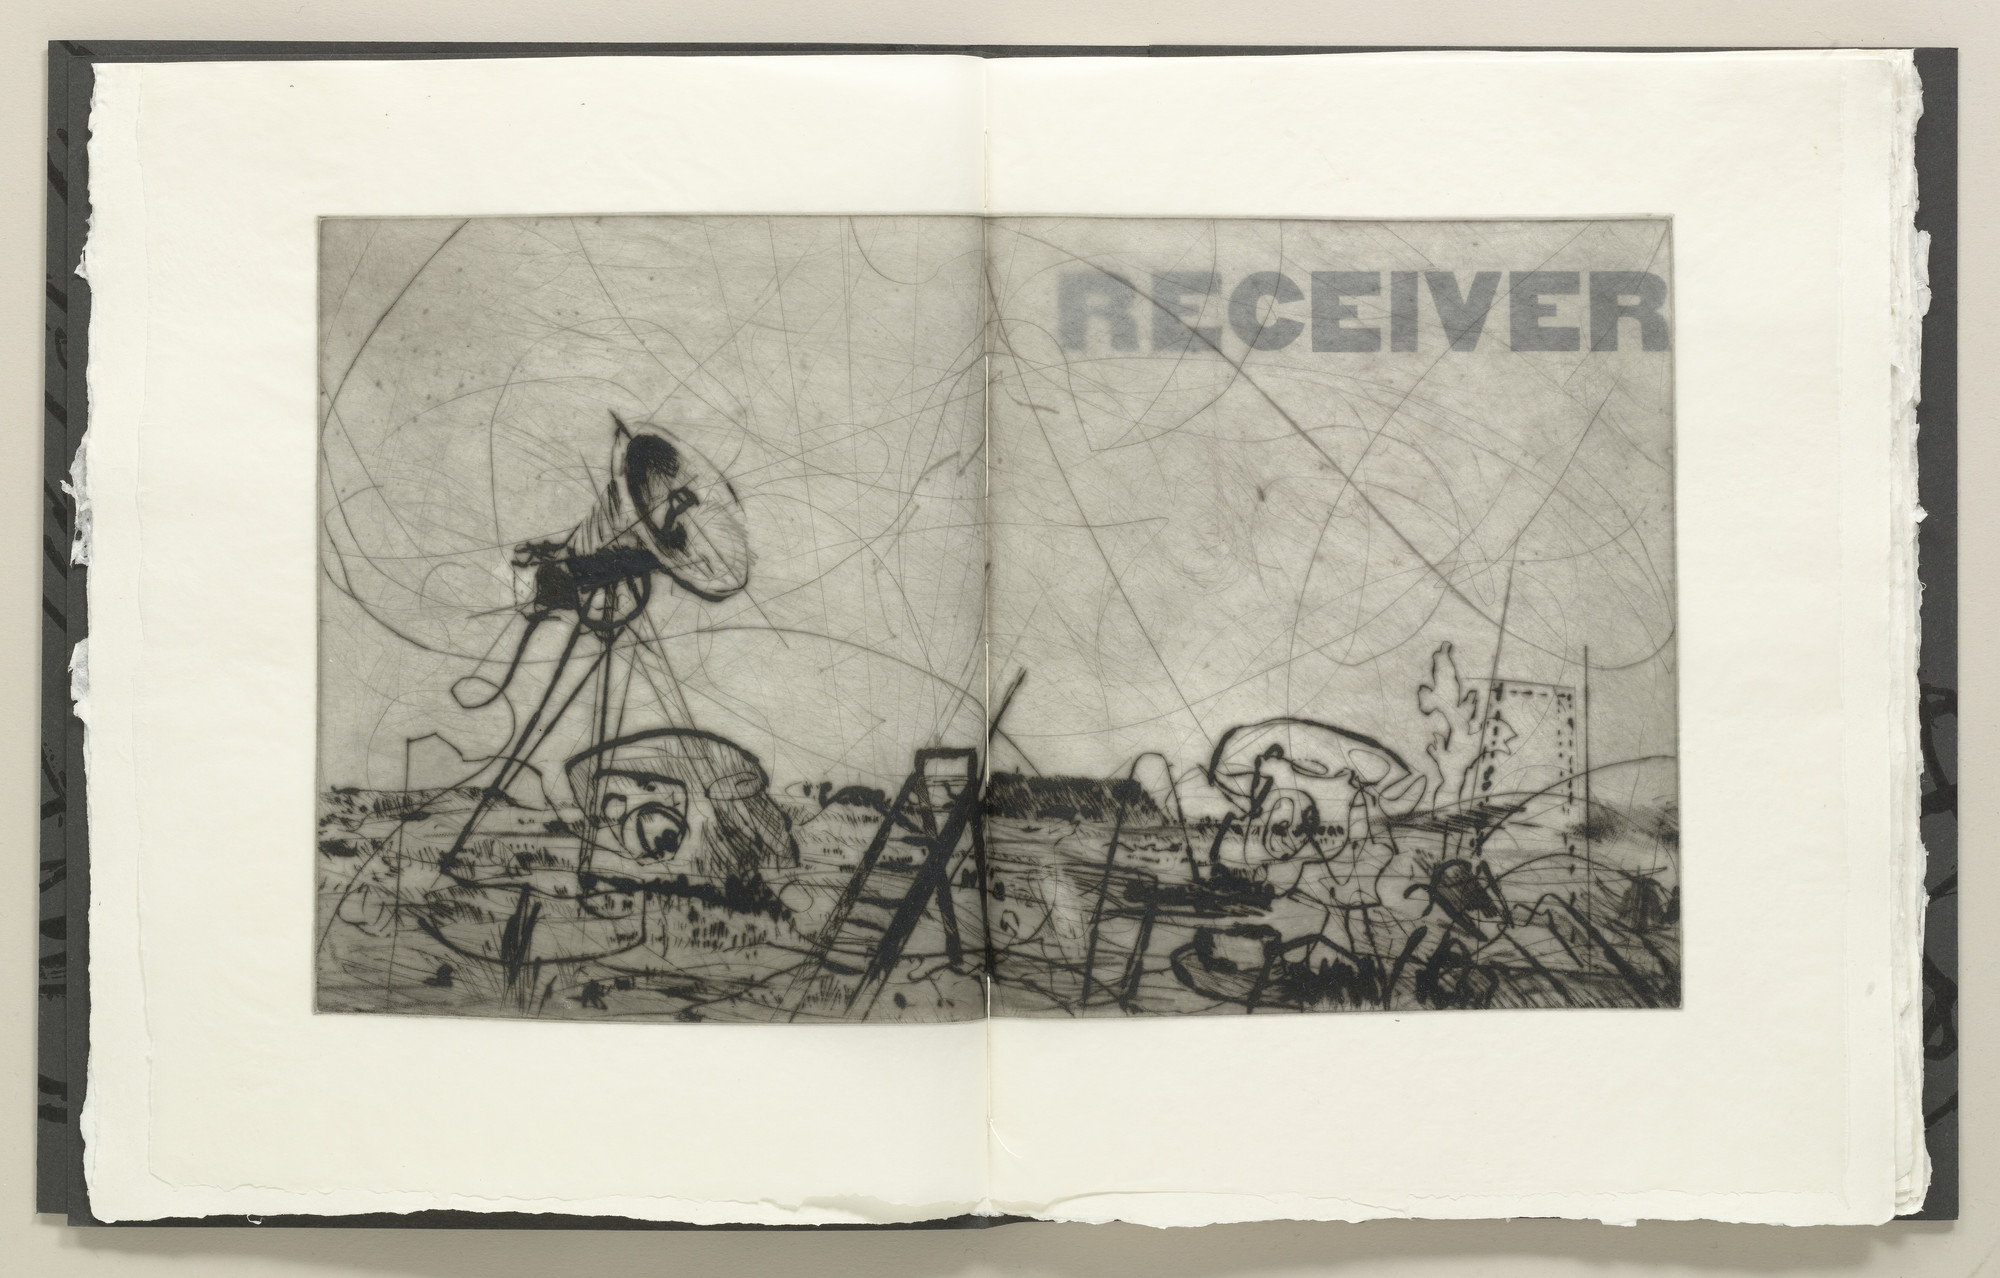 William Kentridge. Receiver. 2006